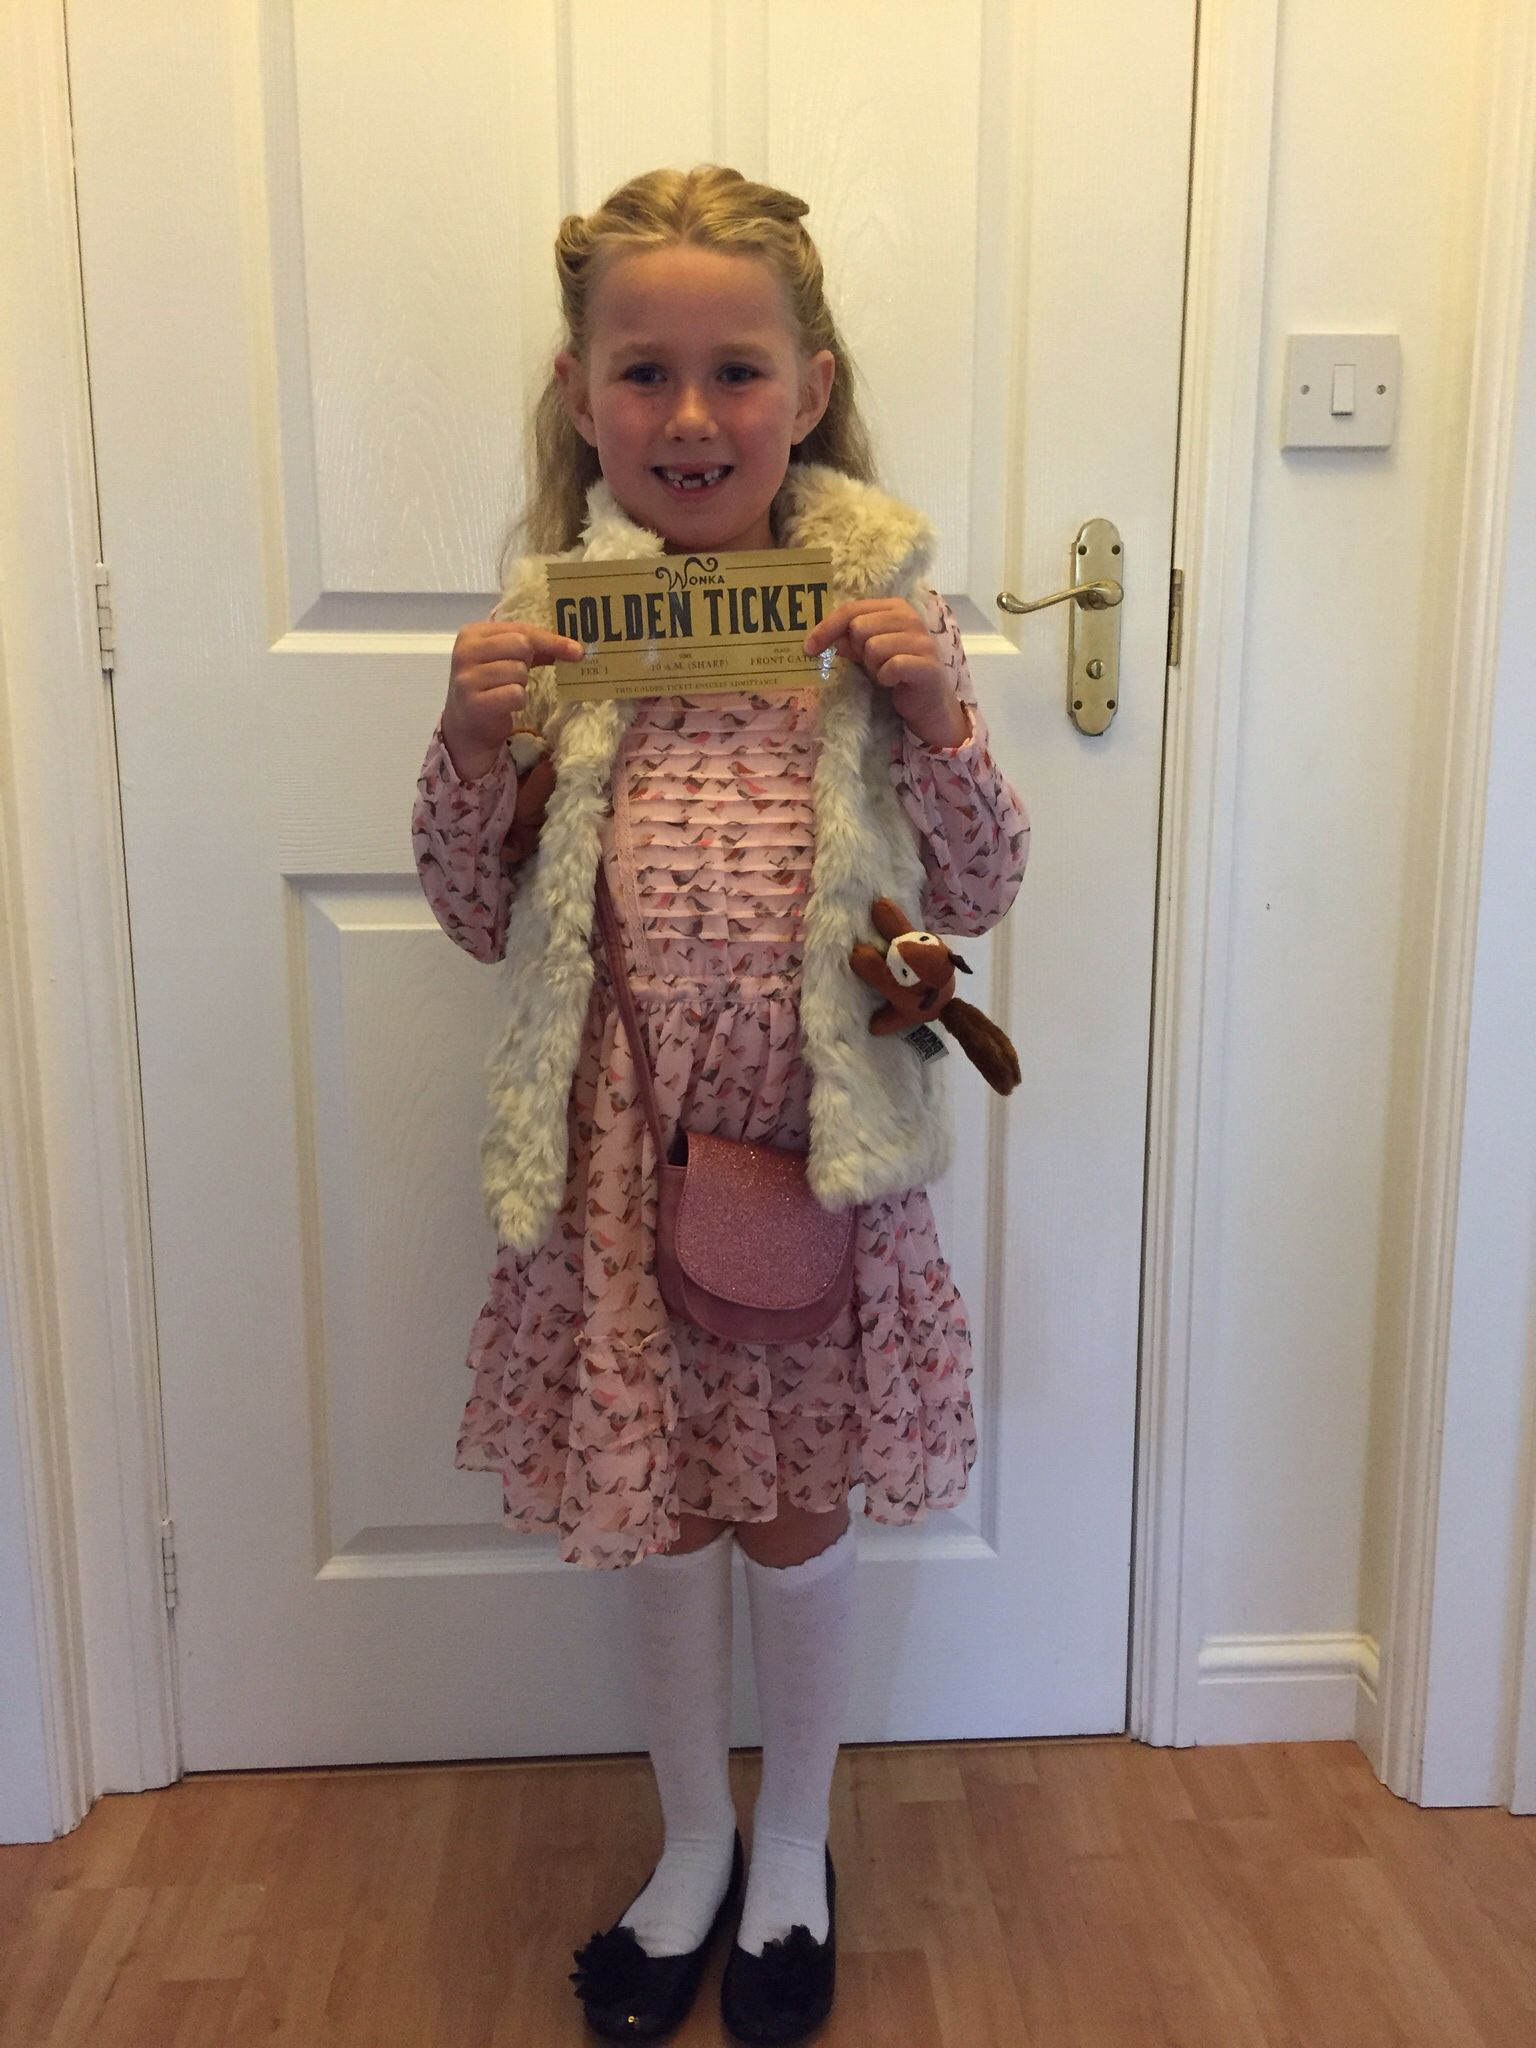 veruca salt costume print off and laminate a golden ticket then